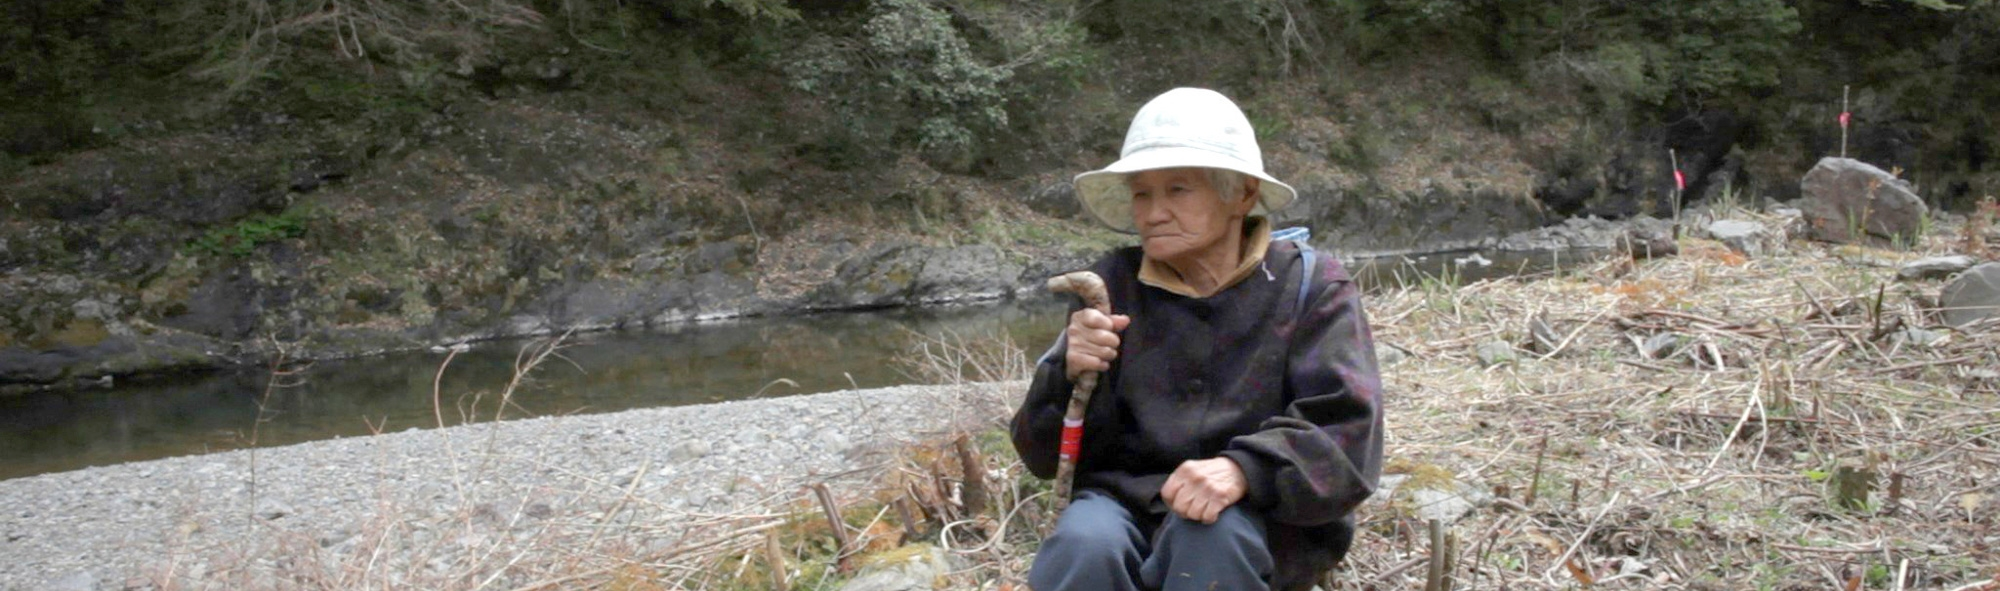 """INORI  A film by Pedro González-Rubio (Japan, 2012, 72 min., digital video. In Japanese with English subtitles) """"Epic. […] González-Rubio's long, contemplative takes feel like an osmotic experience."""" –G. Allen Johnson, San Francisco Chronicle  Winner of the Golden Leopard at the Locarno Film Festival, the third feature film by acclaimed director González-Rubio (Alamar) is a stunning and poetic documentary shot in a tiny mountain community in Japan, made at the invitation of Japanese director Naomi Kawase and the Nara Film Festival. Blending documentary and narrative, Inori (Japanese for 'prayer') depicts the lives of the aging population of the isolated village. As the younger generations have left to look for work elsewhere, the remaining elderly inhabitants perform their everyday routine with stoicism and dignity.  Saturday, September 7 at 7:15pm; and Thursday, September 12 at 9pm."""